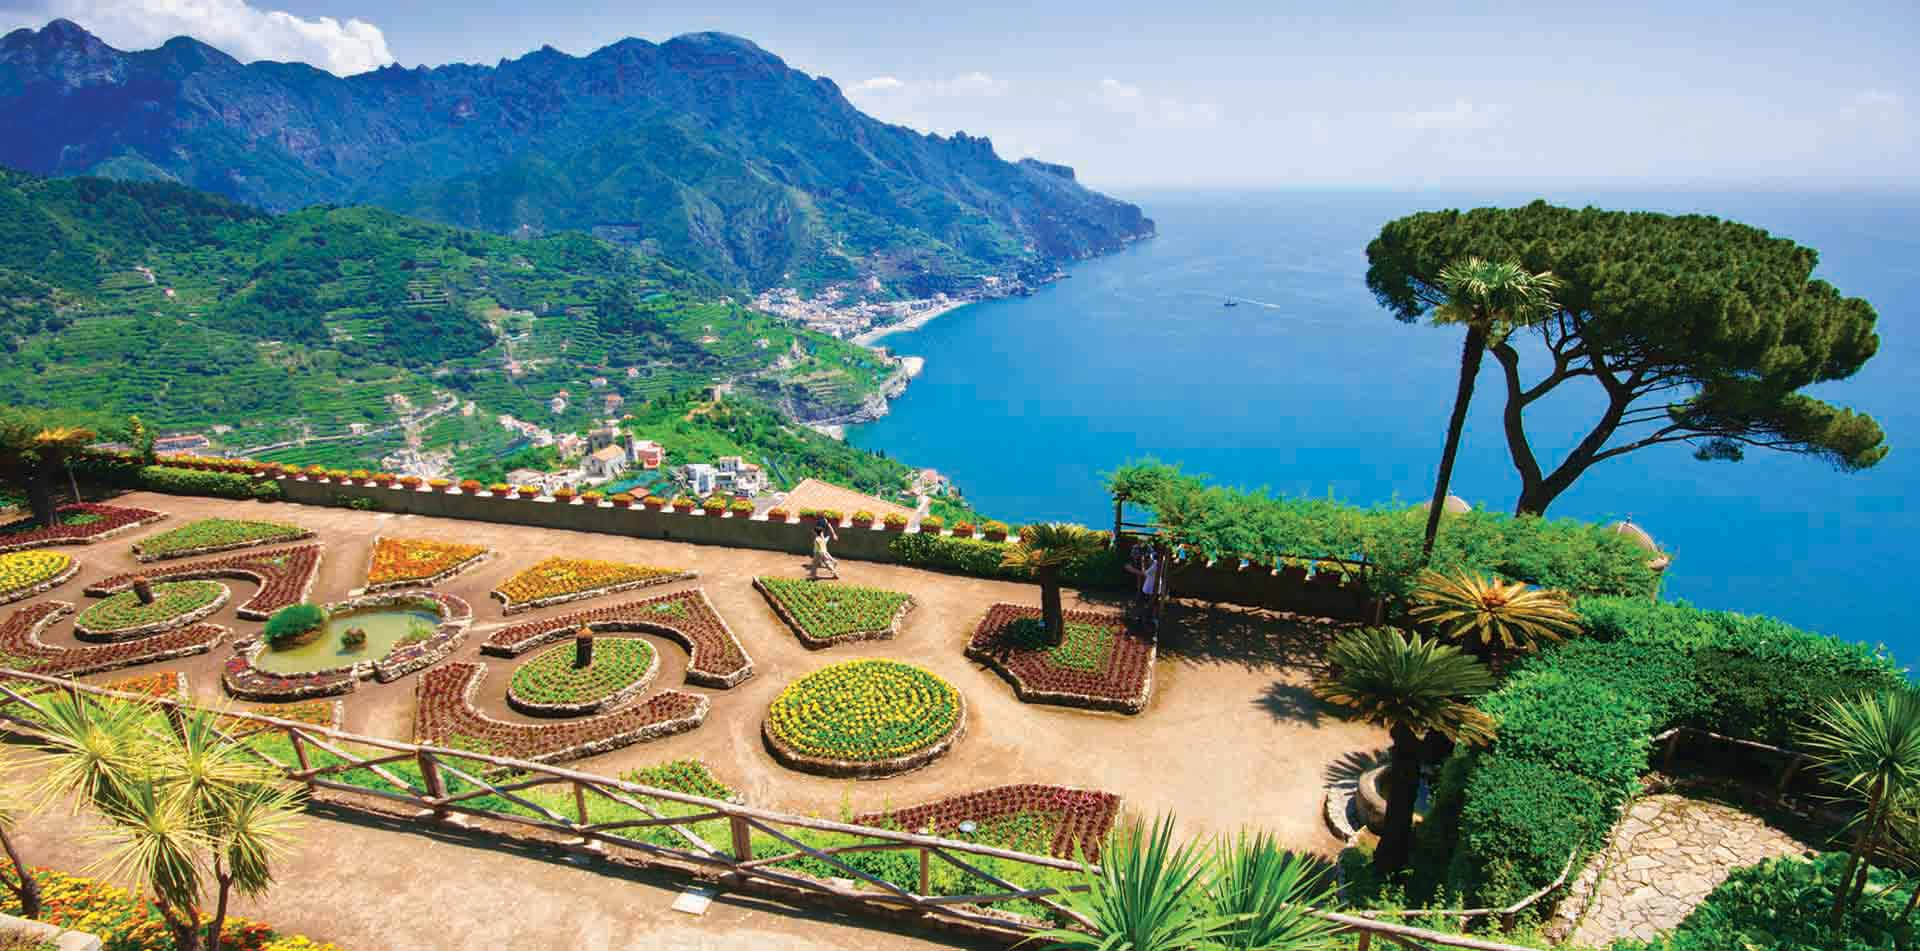 Europe Italy Amalfi Coast Salerno Ravello Villa Rufolo beautiful gardens with sea view - luxury vacation destinations